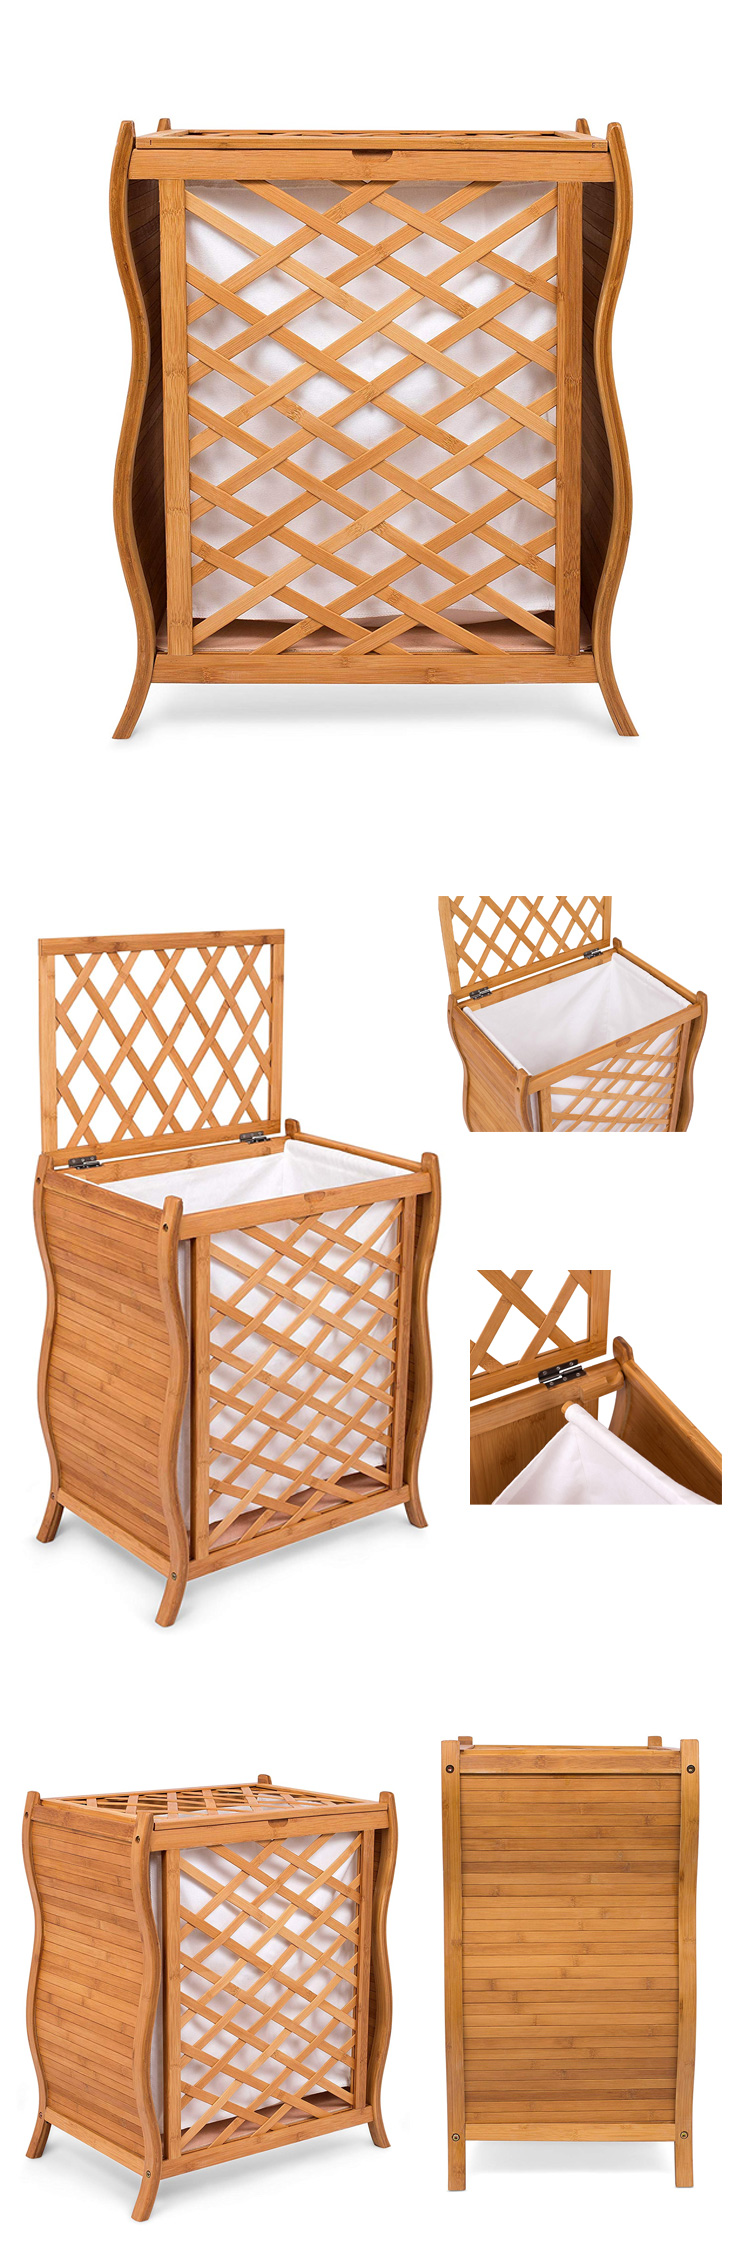 High Quality Natural Bamboo Wave Lid Laundry Basket